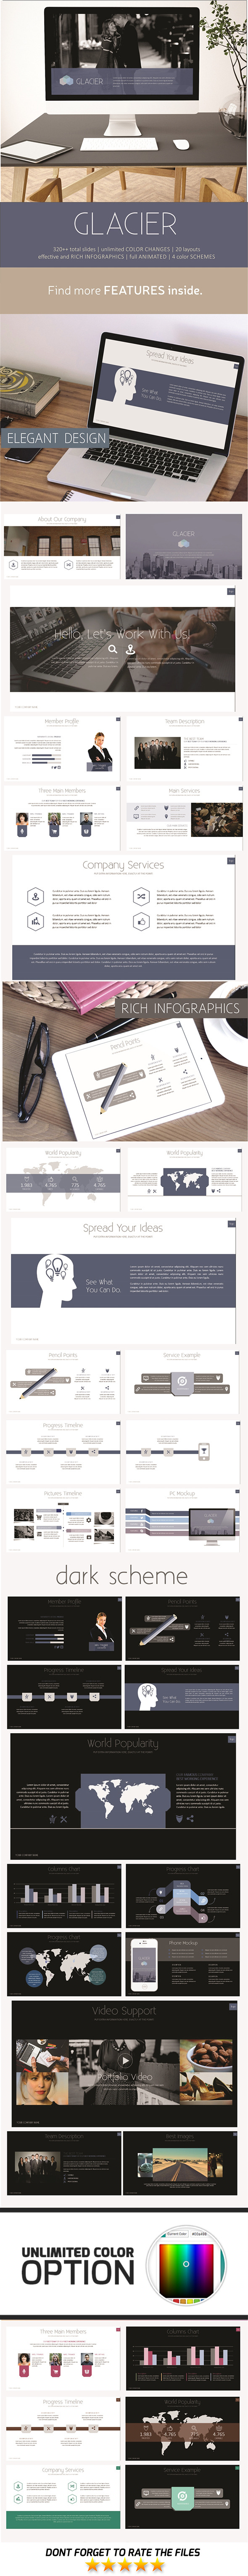 Glacier PowerPoint Template - Business PowerPoint Templates